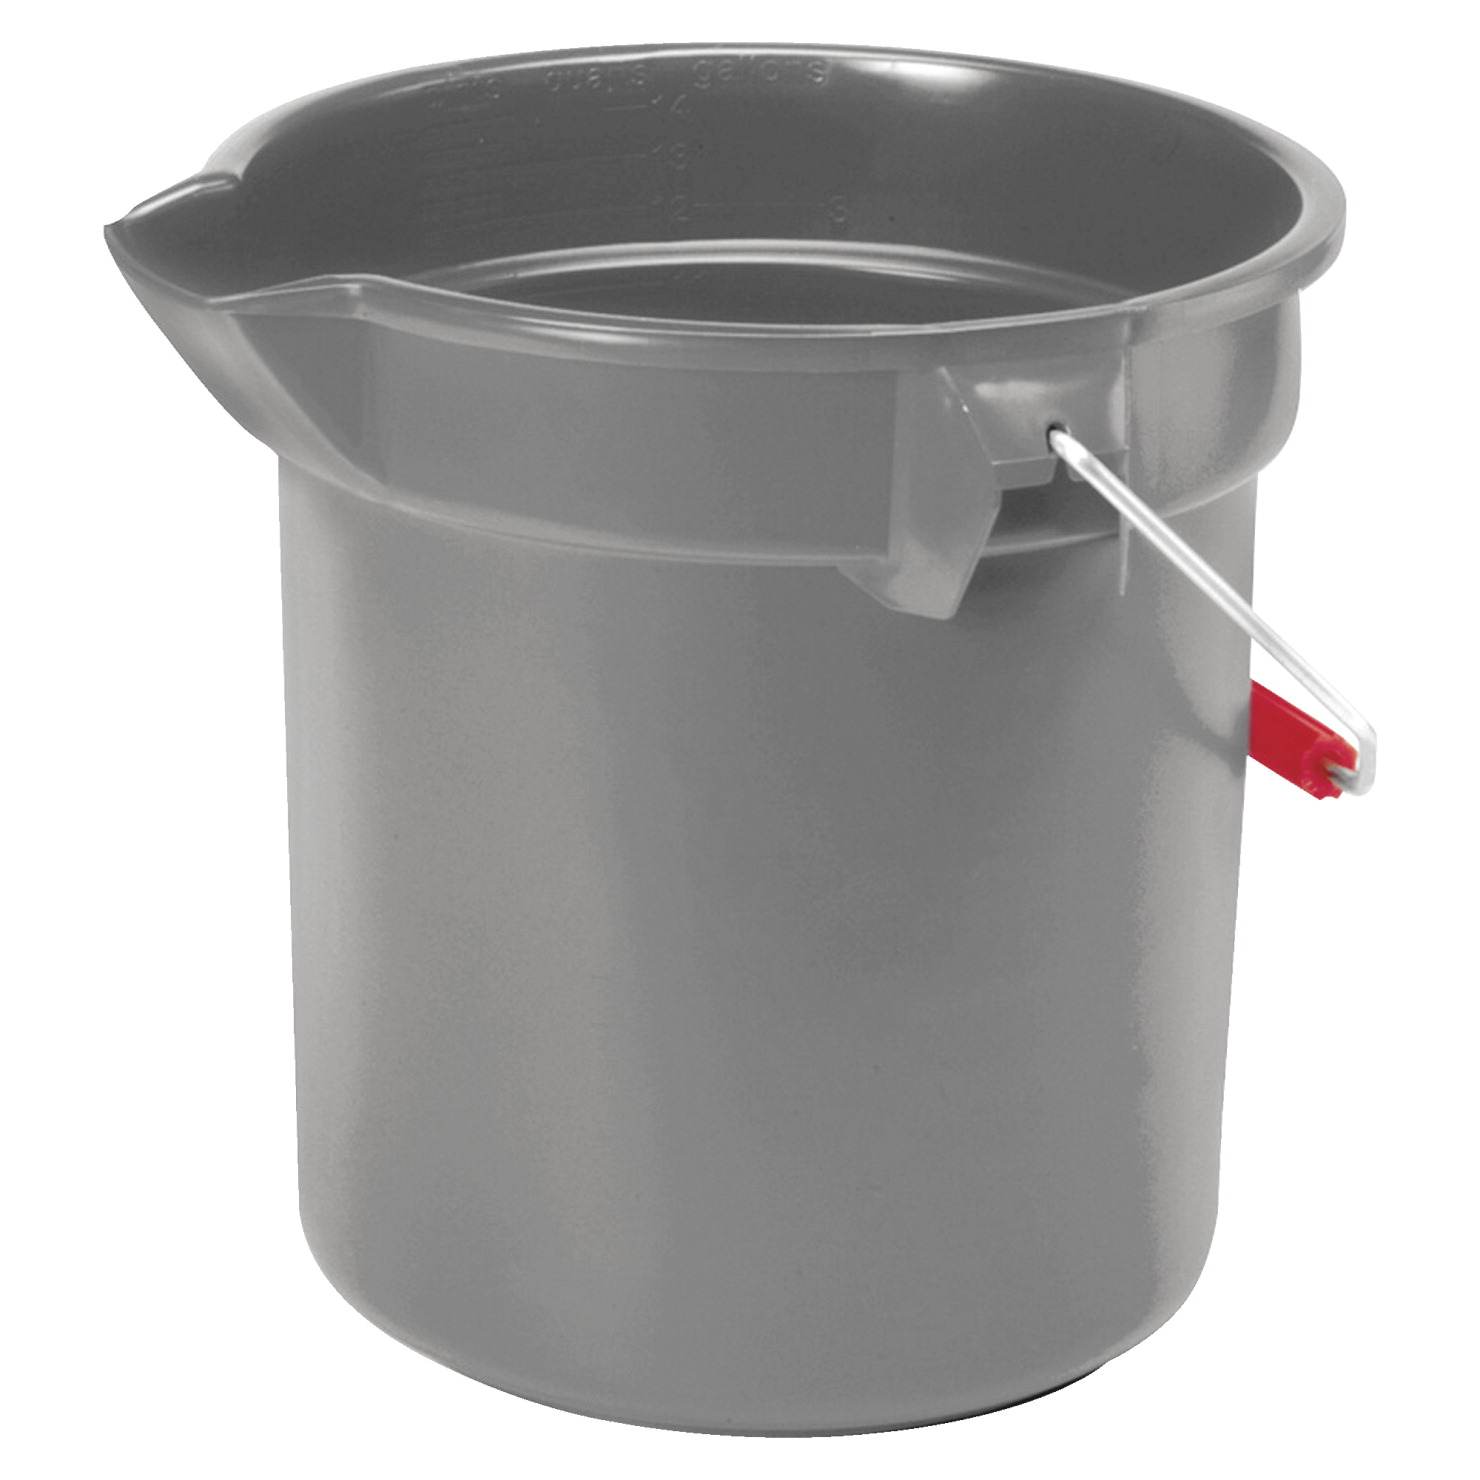 Rubbermaid Brute Durable Flexible Utility Bucket, 10 qt, 10-1/2 L x 10-1/4 W in, Plastic, Zinc-Plated Handle, Gray